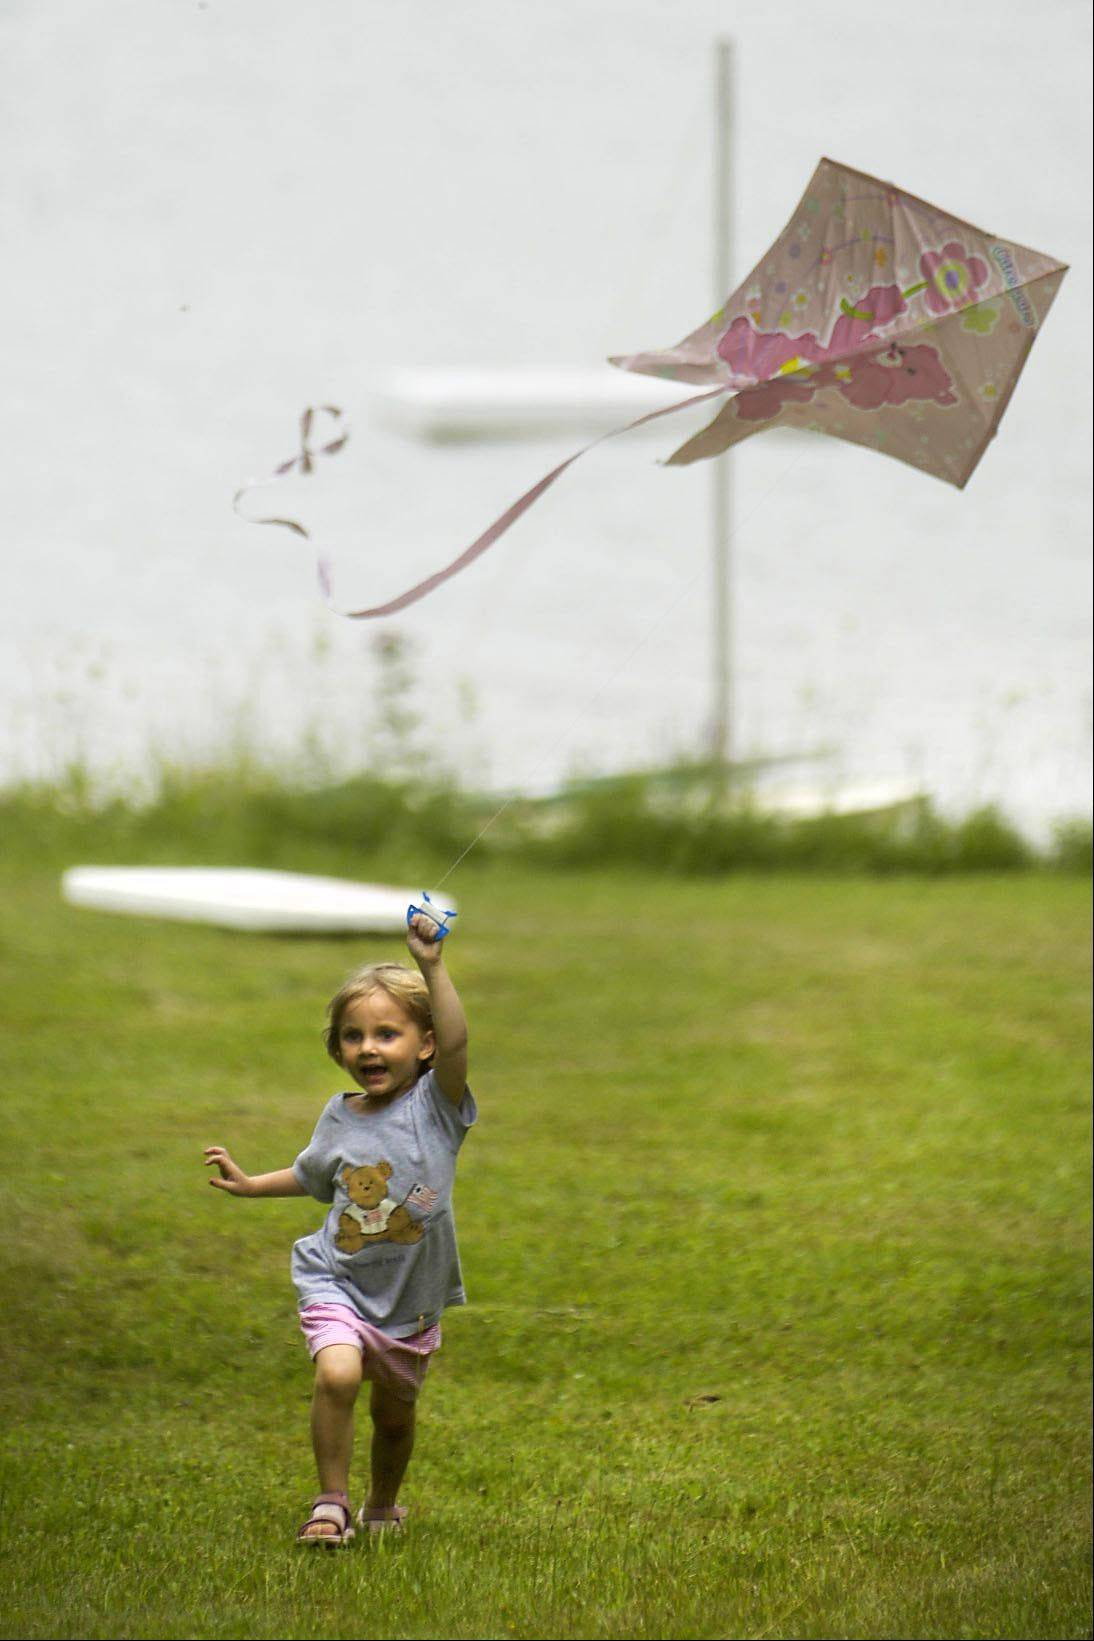 Sometimes you just have to envision what's going to happen and be in the right place to capture the moment. With his daughter, Natalie, running at him and using a telephoto lens, John framed this picture vertically to emphasize the kite as well as his excited daughter.